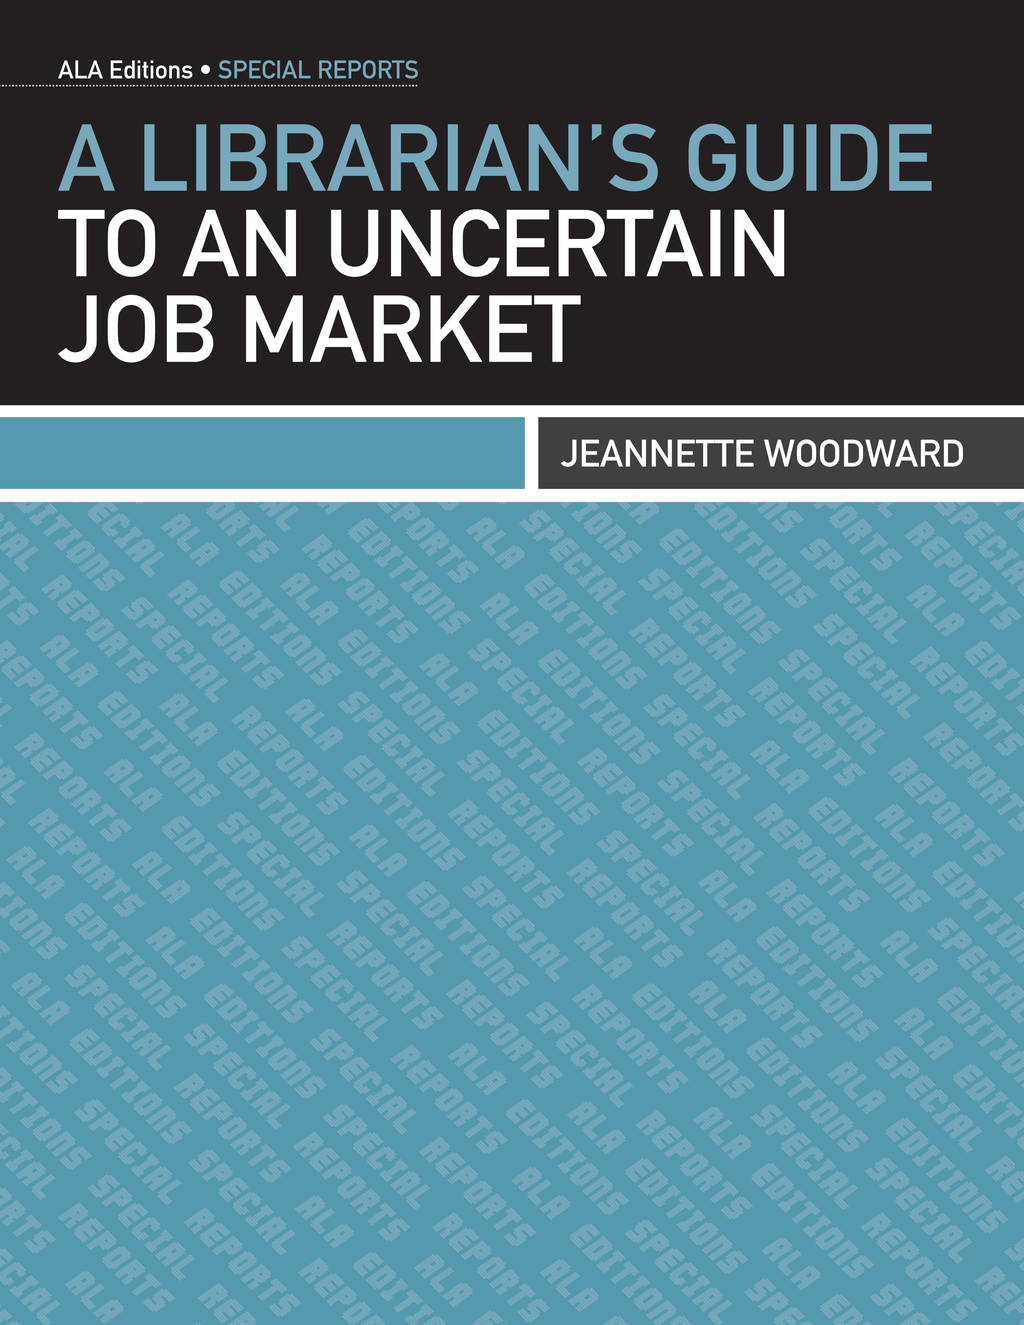 A Librarian's Guide to an Uncertain Job Market By: Jeannette Woodward